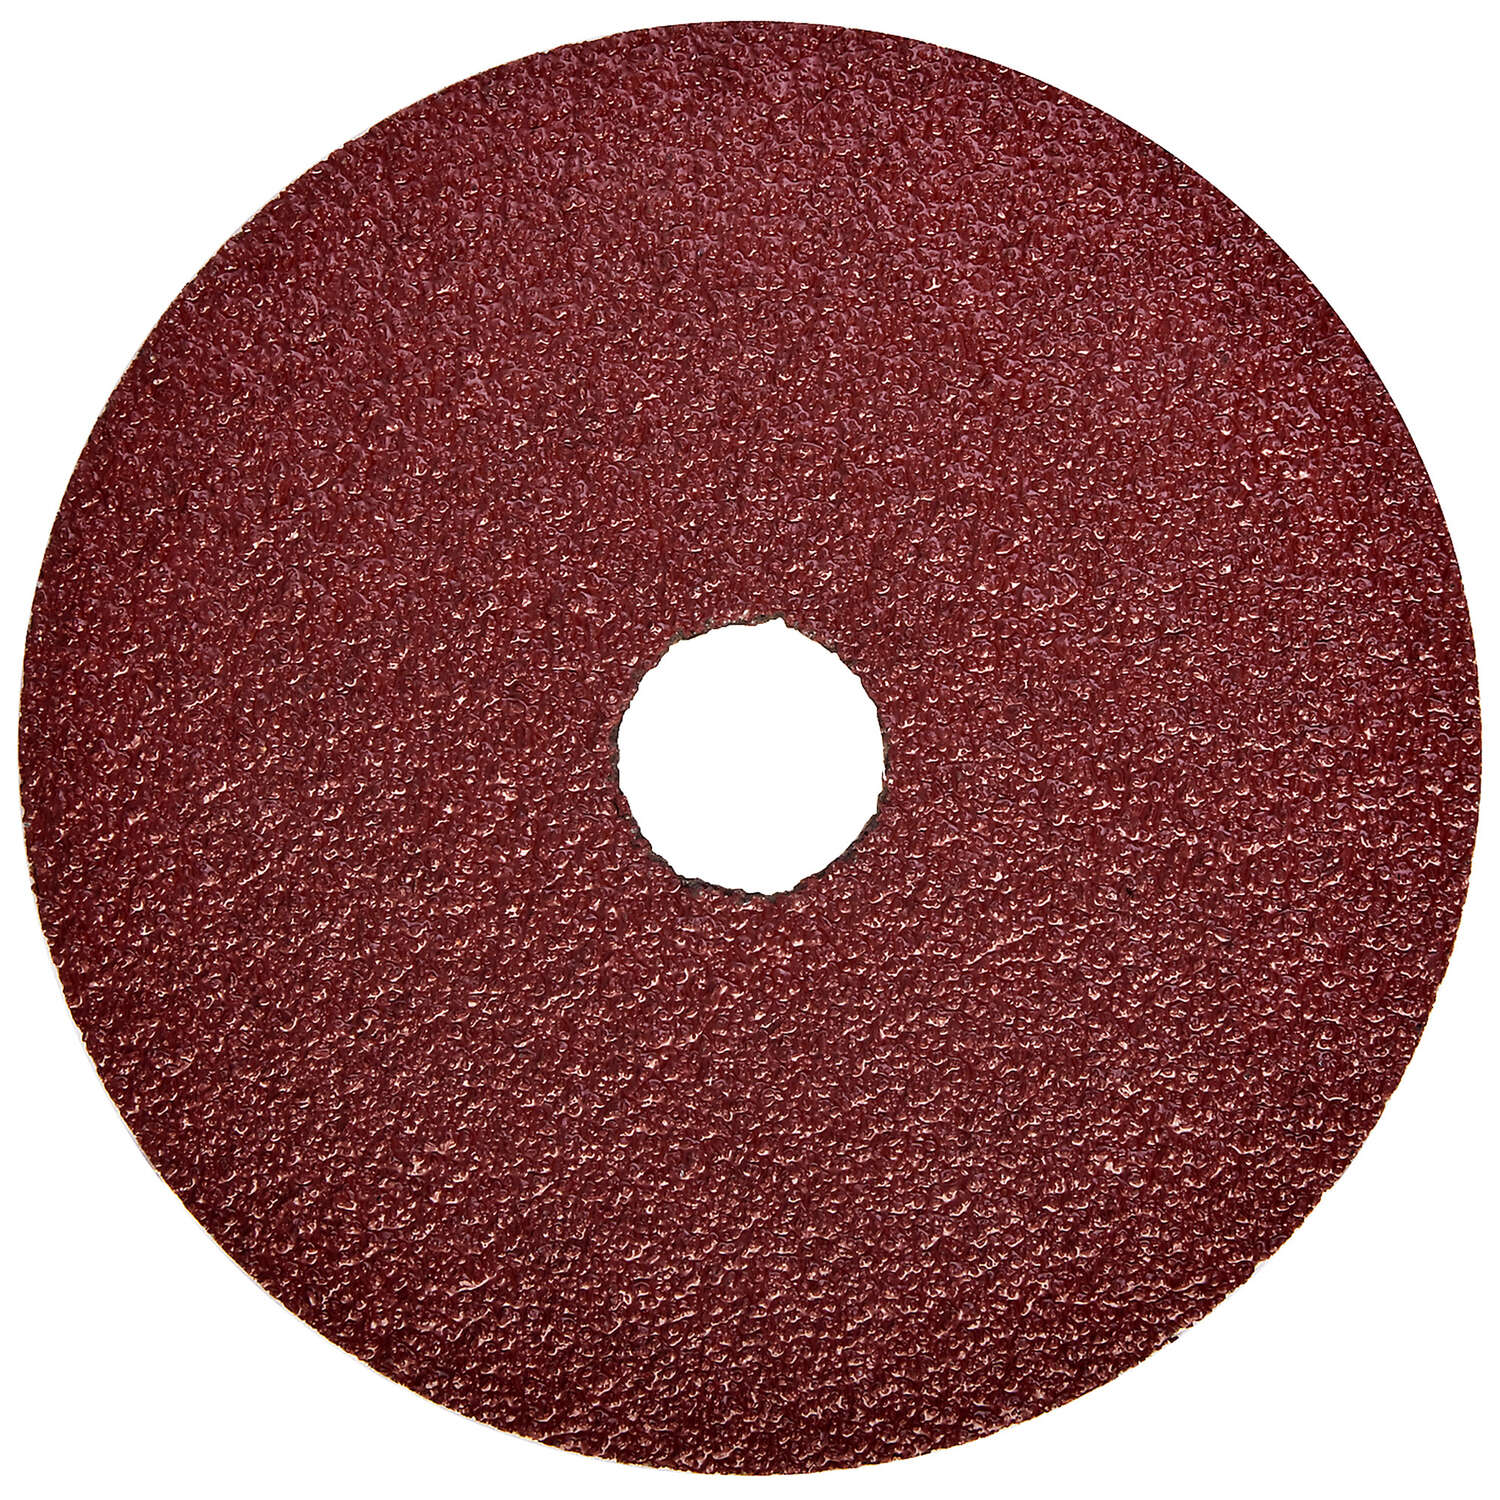 Norton 5 in. Dia. x 7/8 in. Aluminum Oxide Fiber Disc 36 Grit 25 pc.